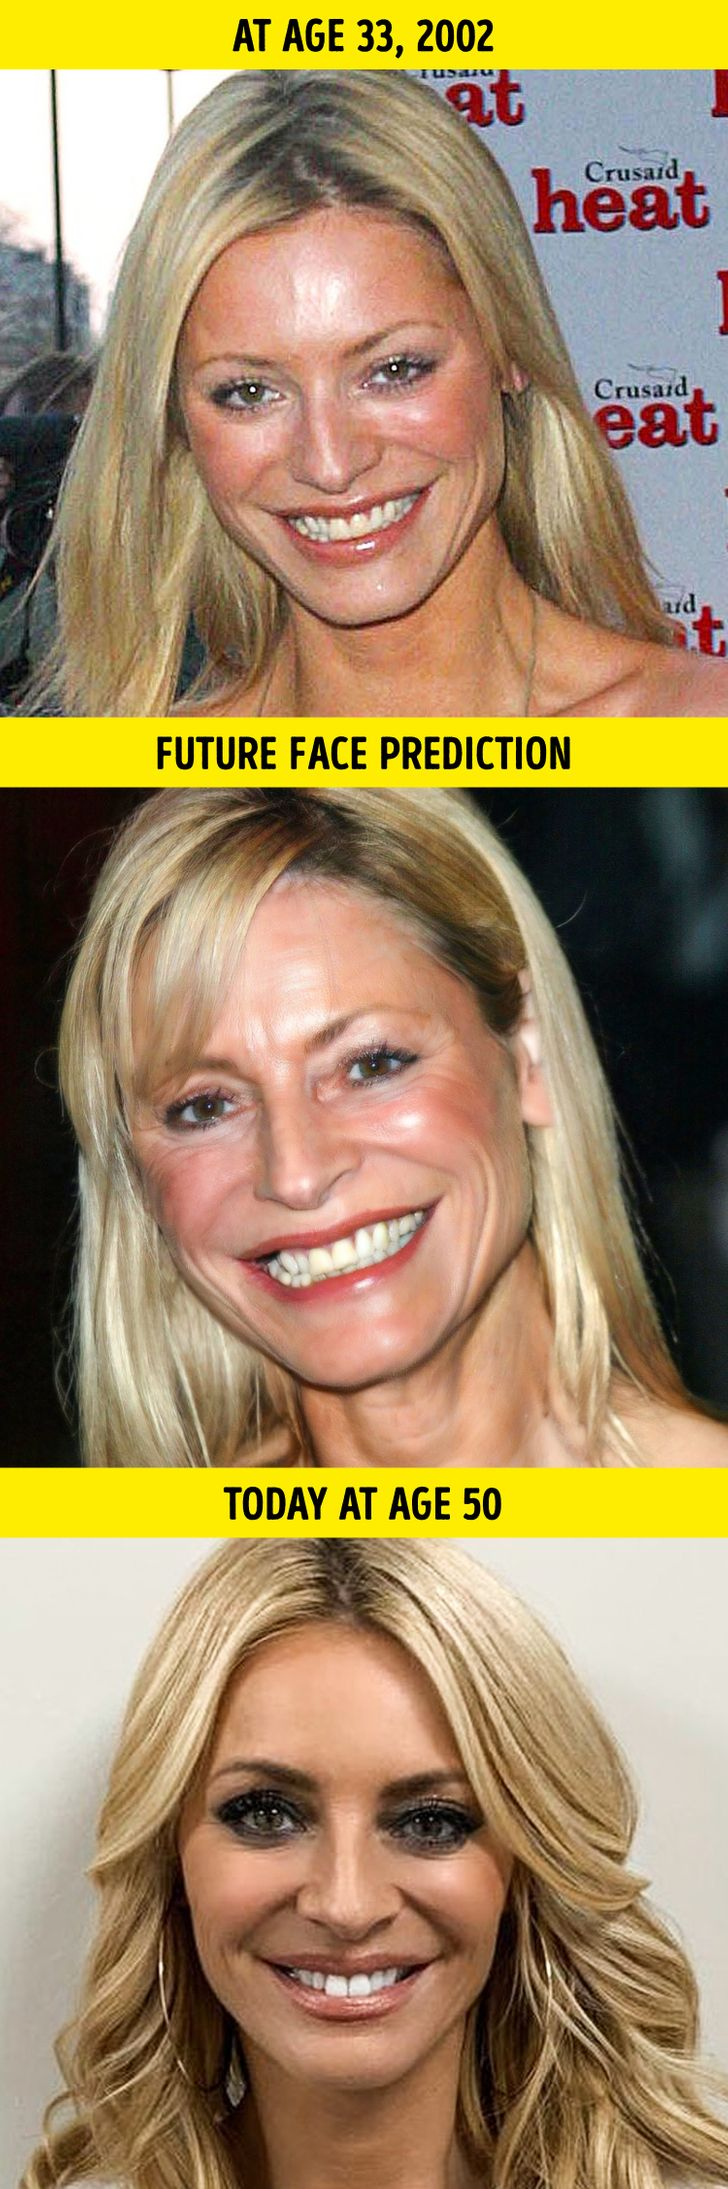 A Plastic Surgeon Reveals How 10 Celebrities Would Look If They Aged Like Average People